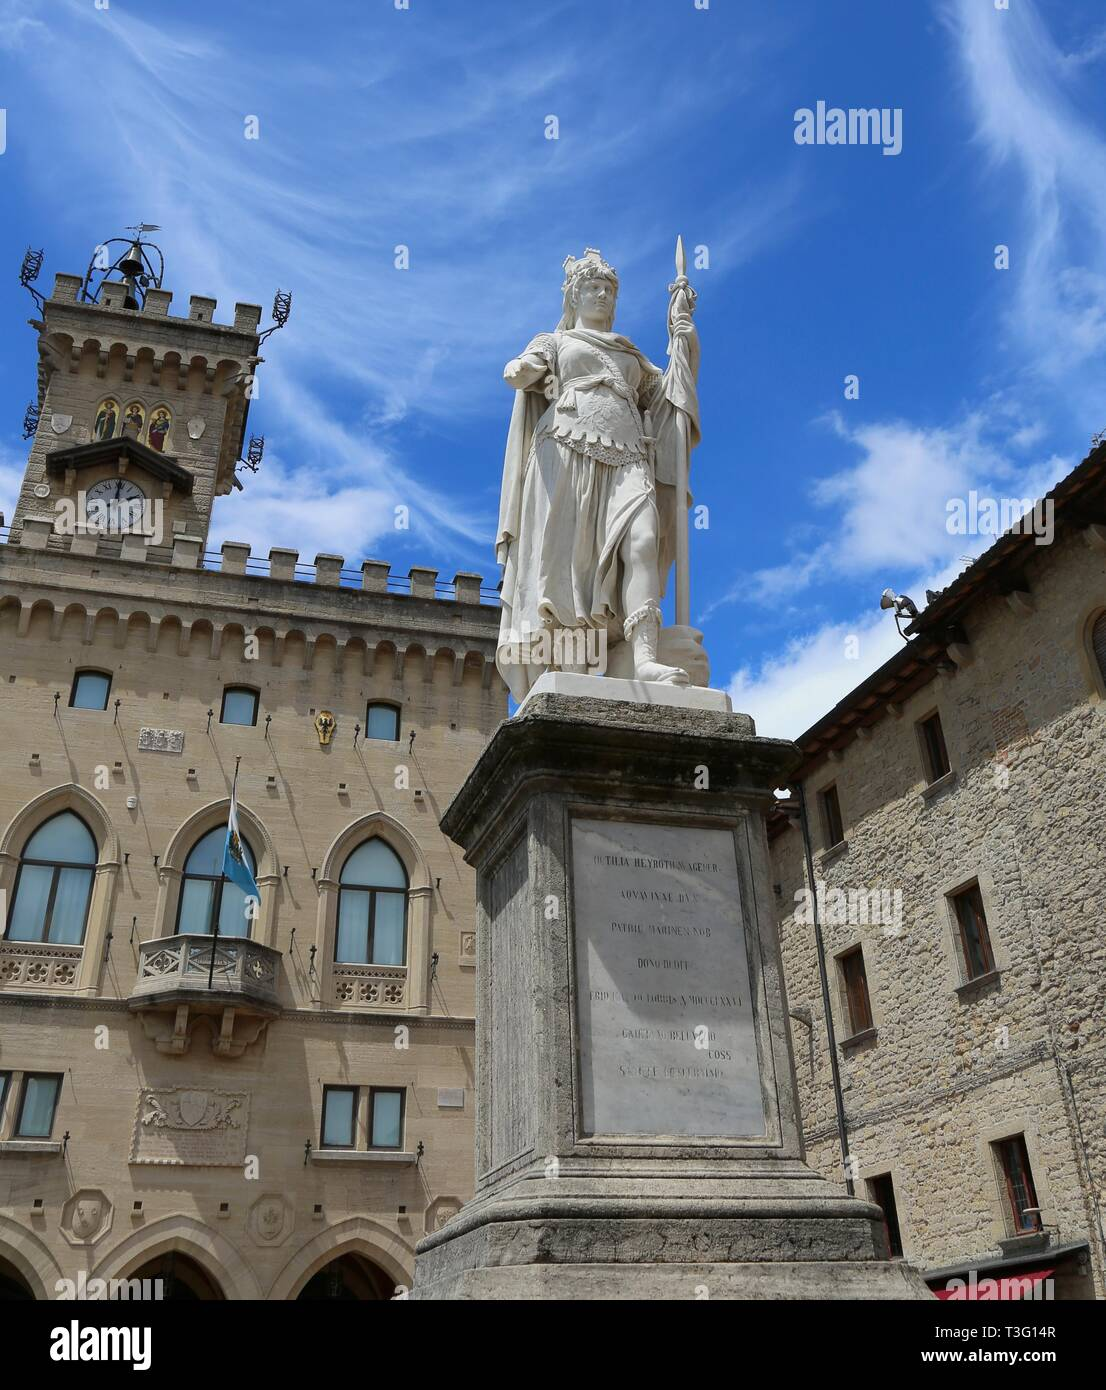 San Marino, SM, san Marino Republic - June 6, 2017:  Statue of Liberty in the main square of microstate of San Marino and the ancient palace called Pa - Stock Image